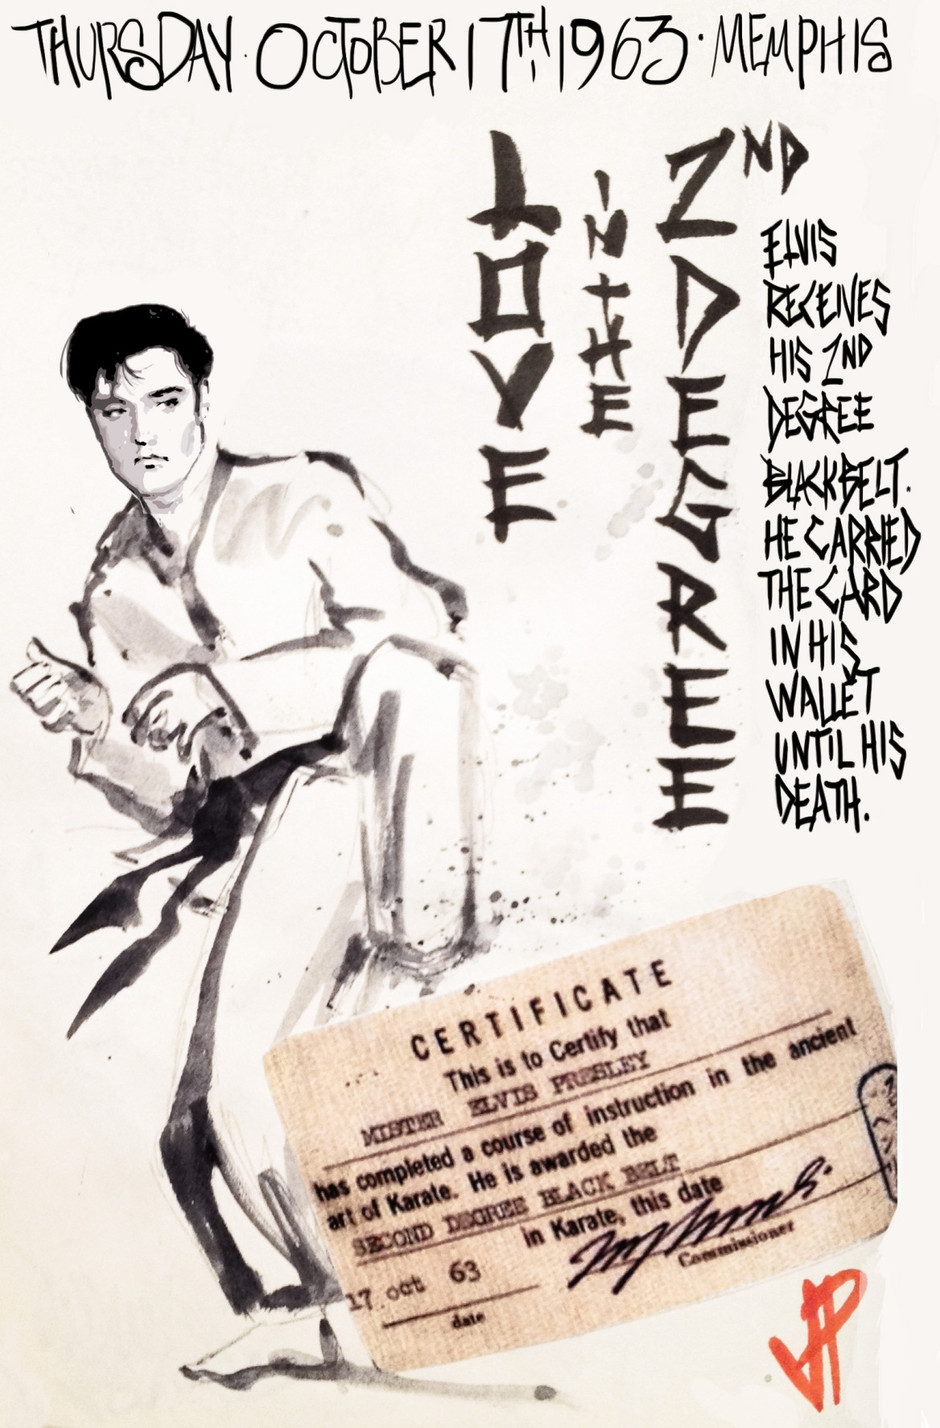 THIS DAY IN ELVIS HISTORY... LOVE IN THE 2ND DEGREE